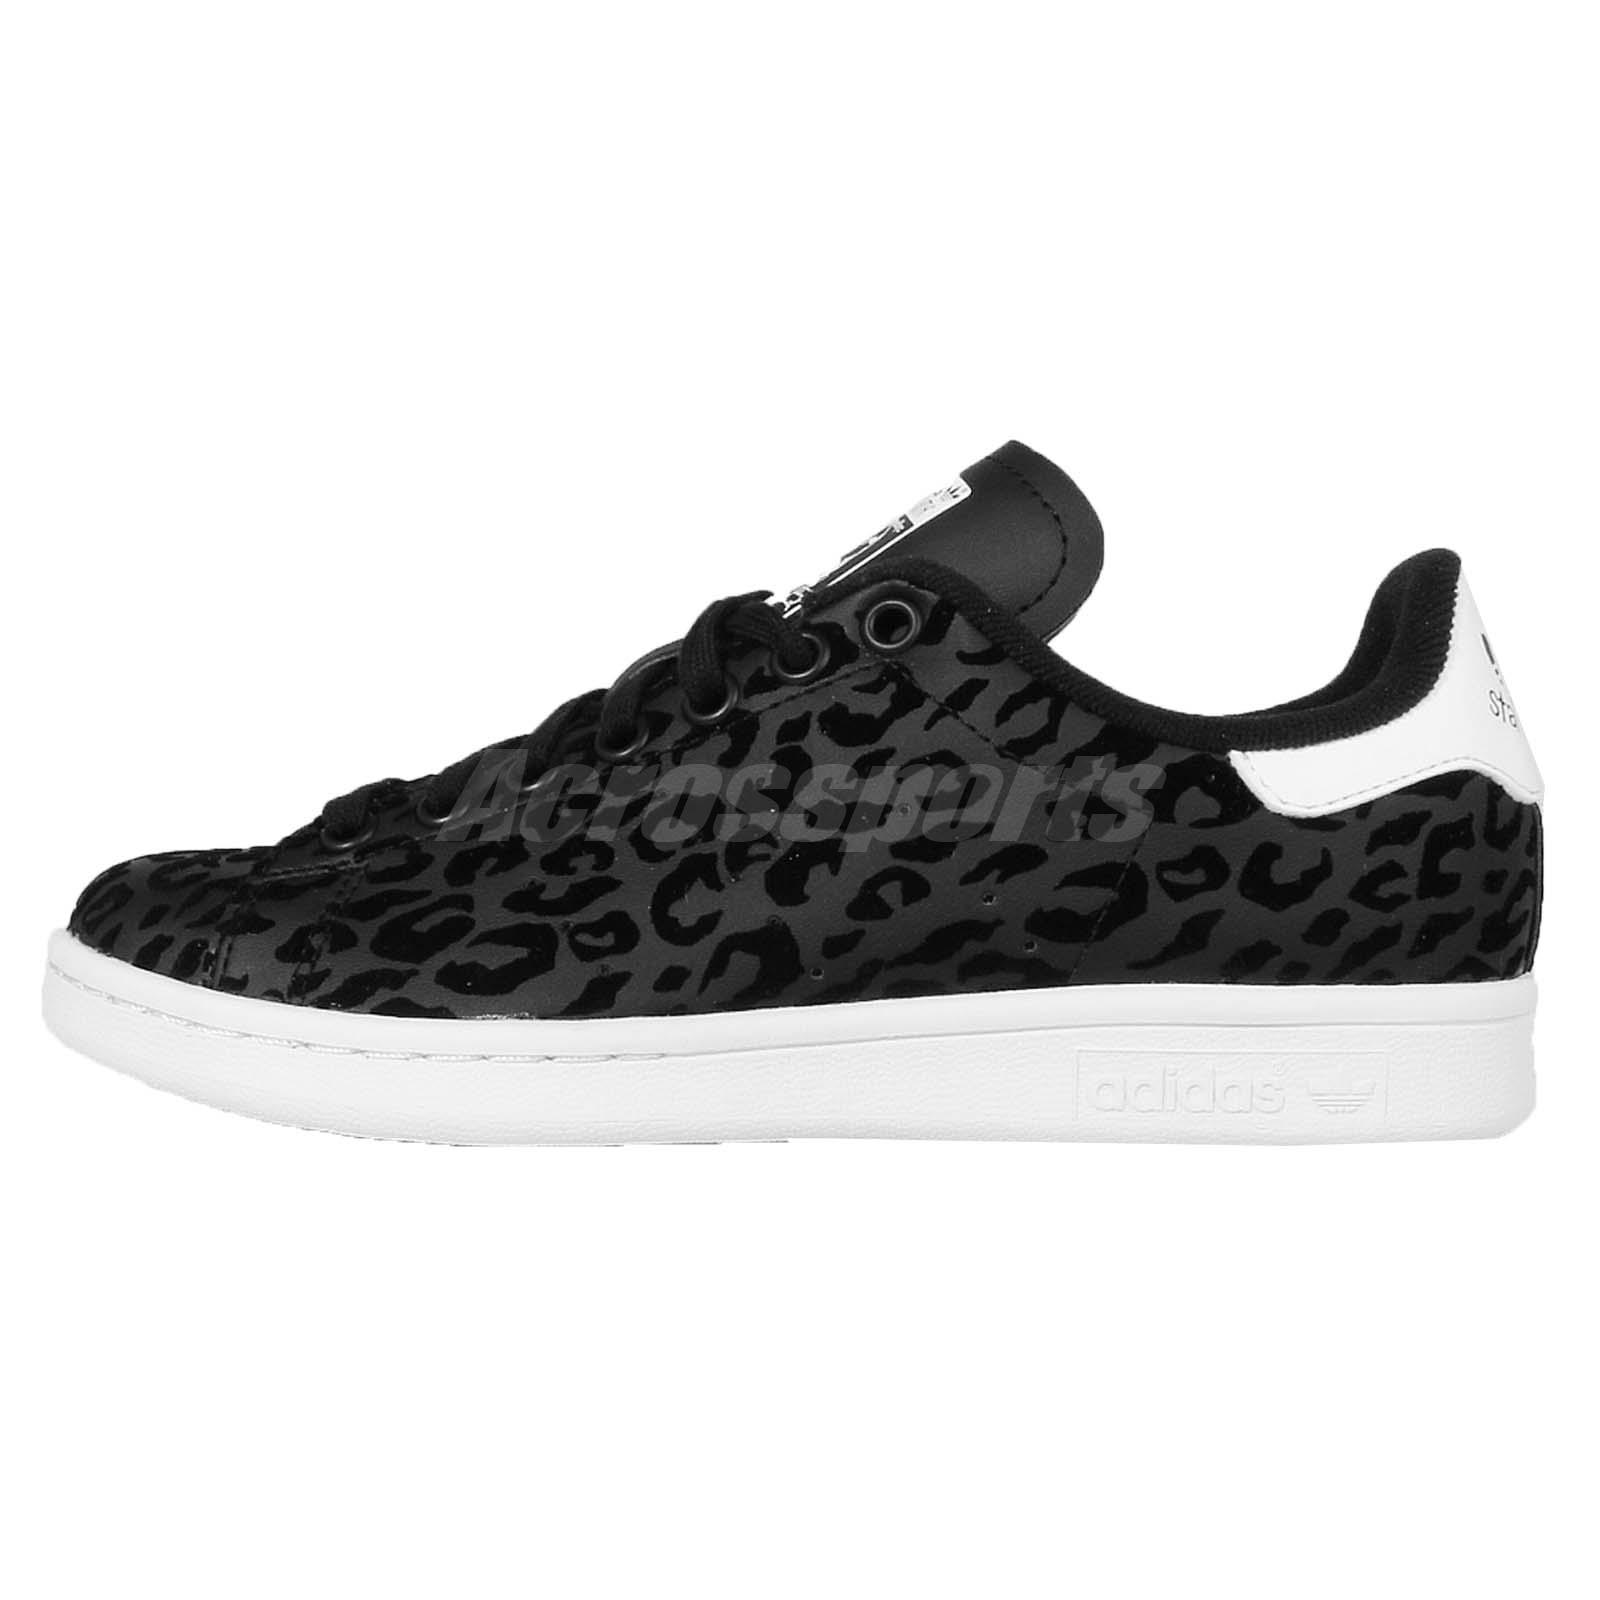 Original  Adidas Originals Stan Smith BlackLeopard Womens Shoes Cheap Sale